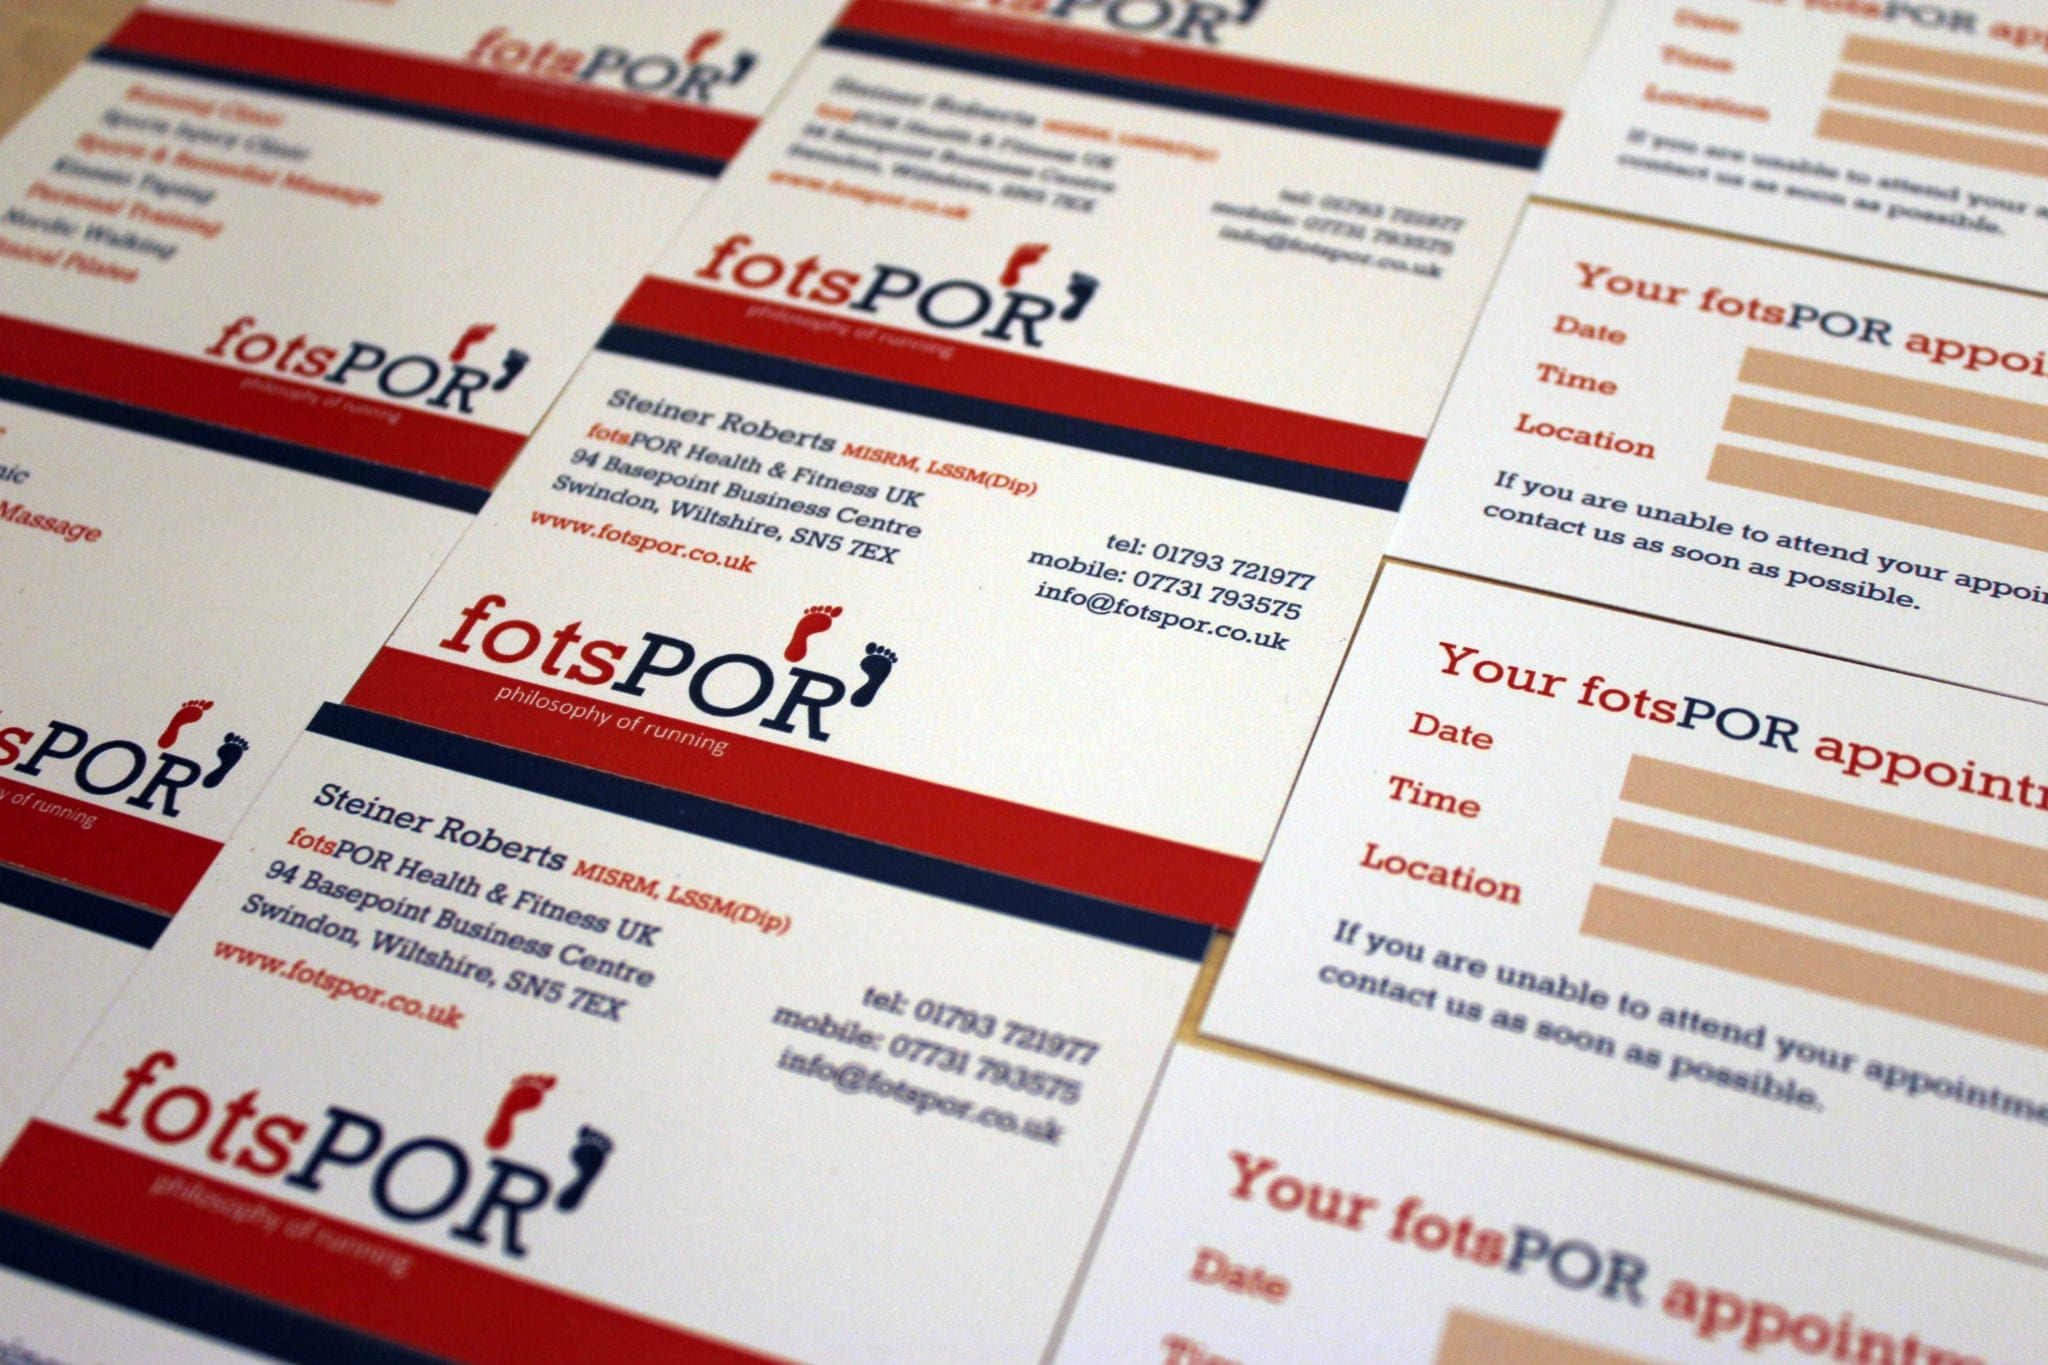 Business and Appointment Cards for fotsPOR UK • O\'Brien Media Ltd